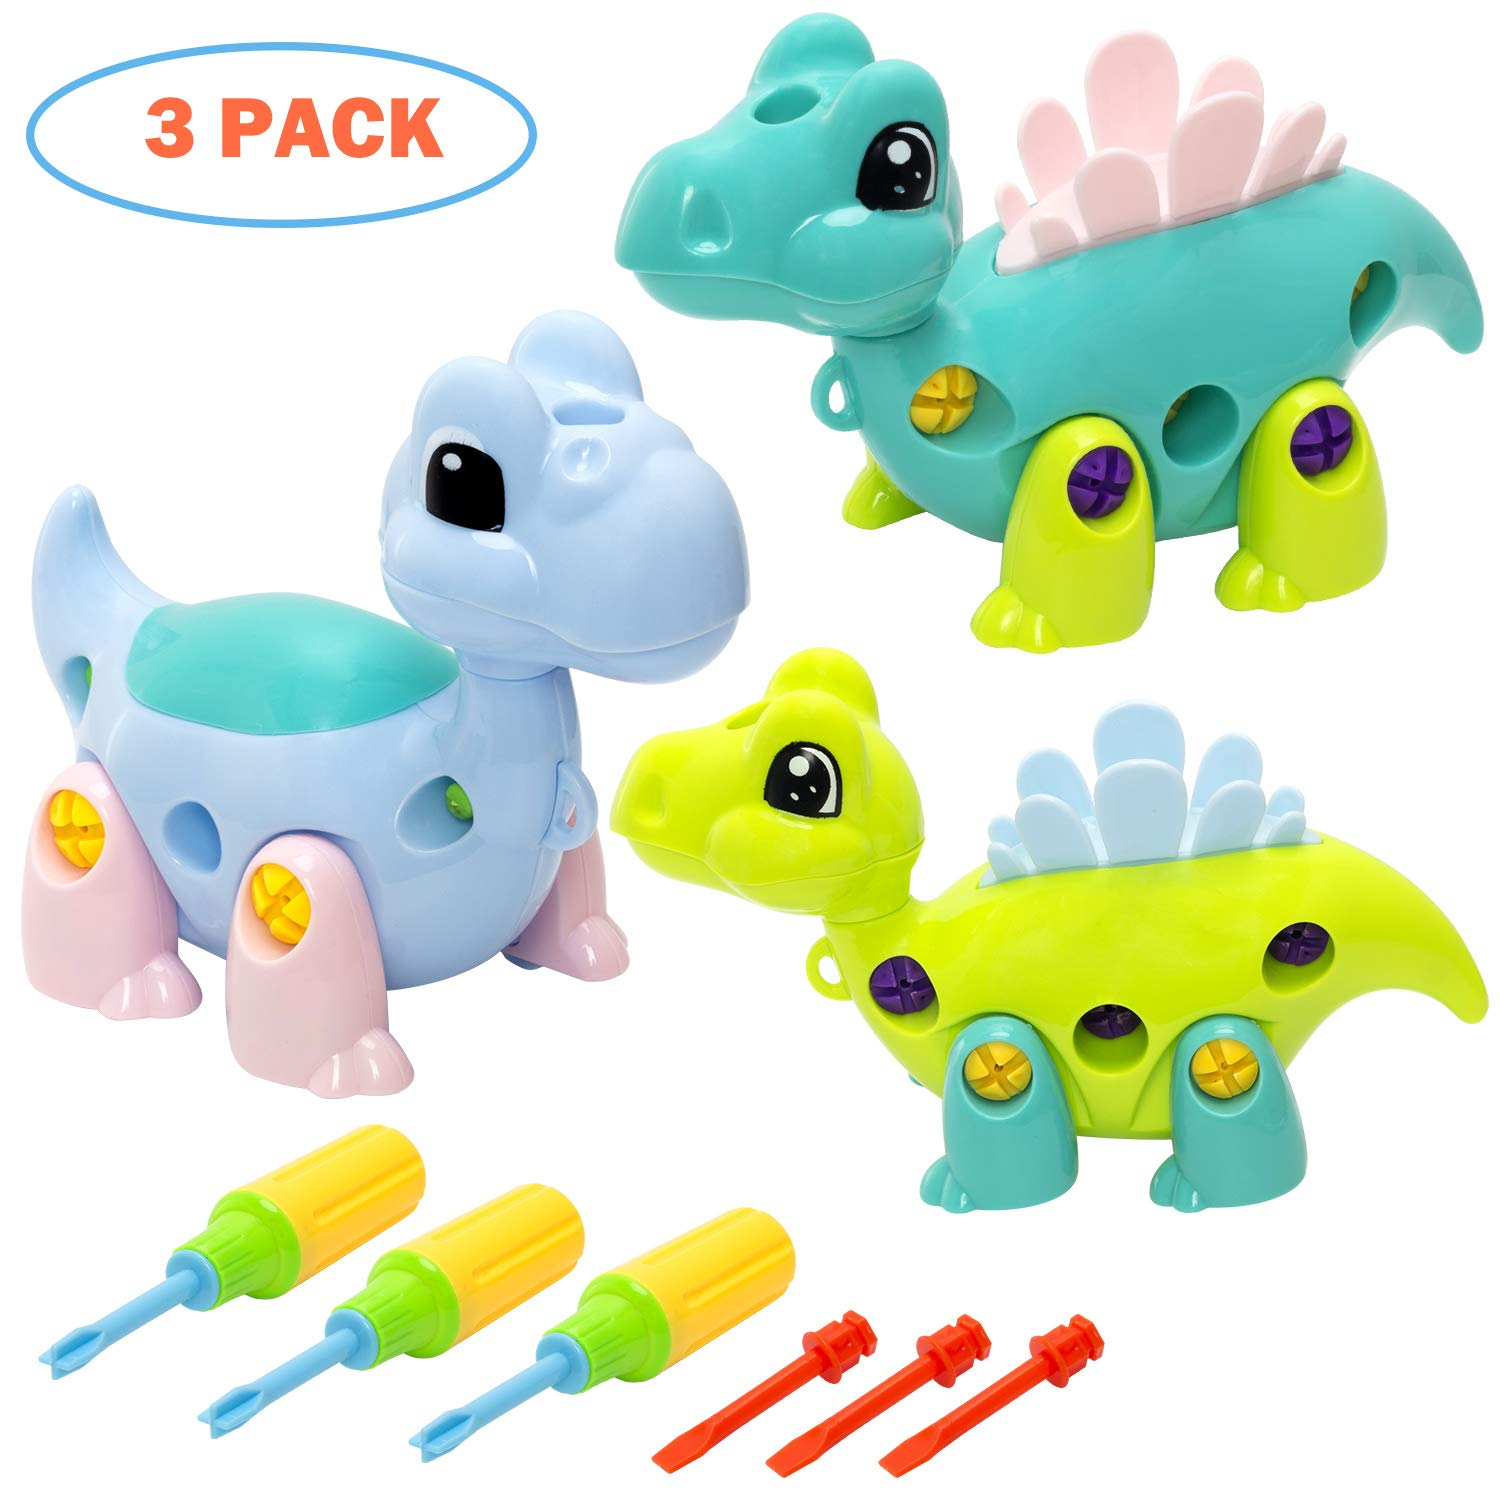 Amazon.com: INNOCHEER Dinosaur Take Apart Toys with Tools, Stem Learning Set, Birthday for Boys, Girls Age 3 Years and Up: \u0026 Games